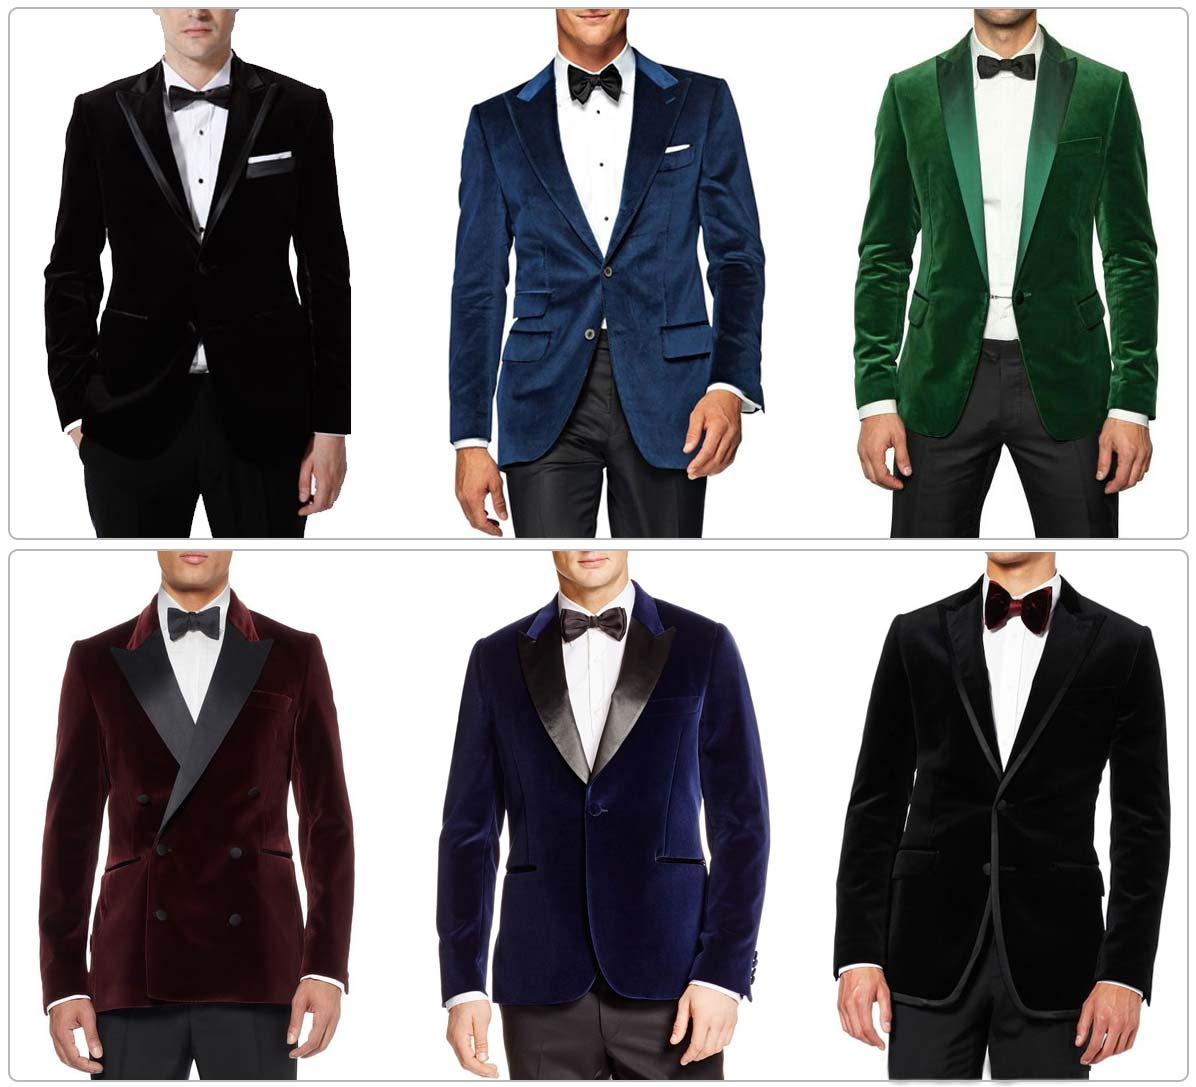 WHICH COLORS YOU SHOULD CONSIDER FOR YOUR WEDDING TUXEDO